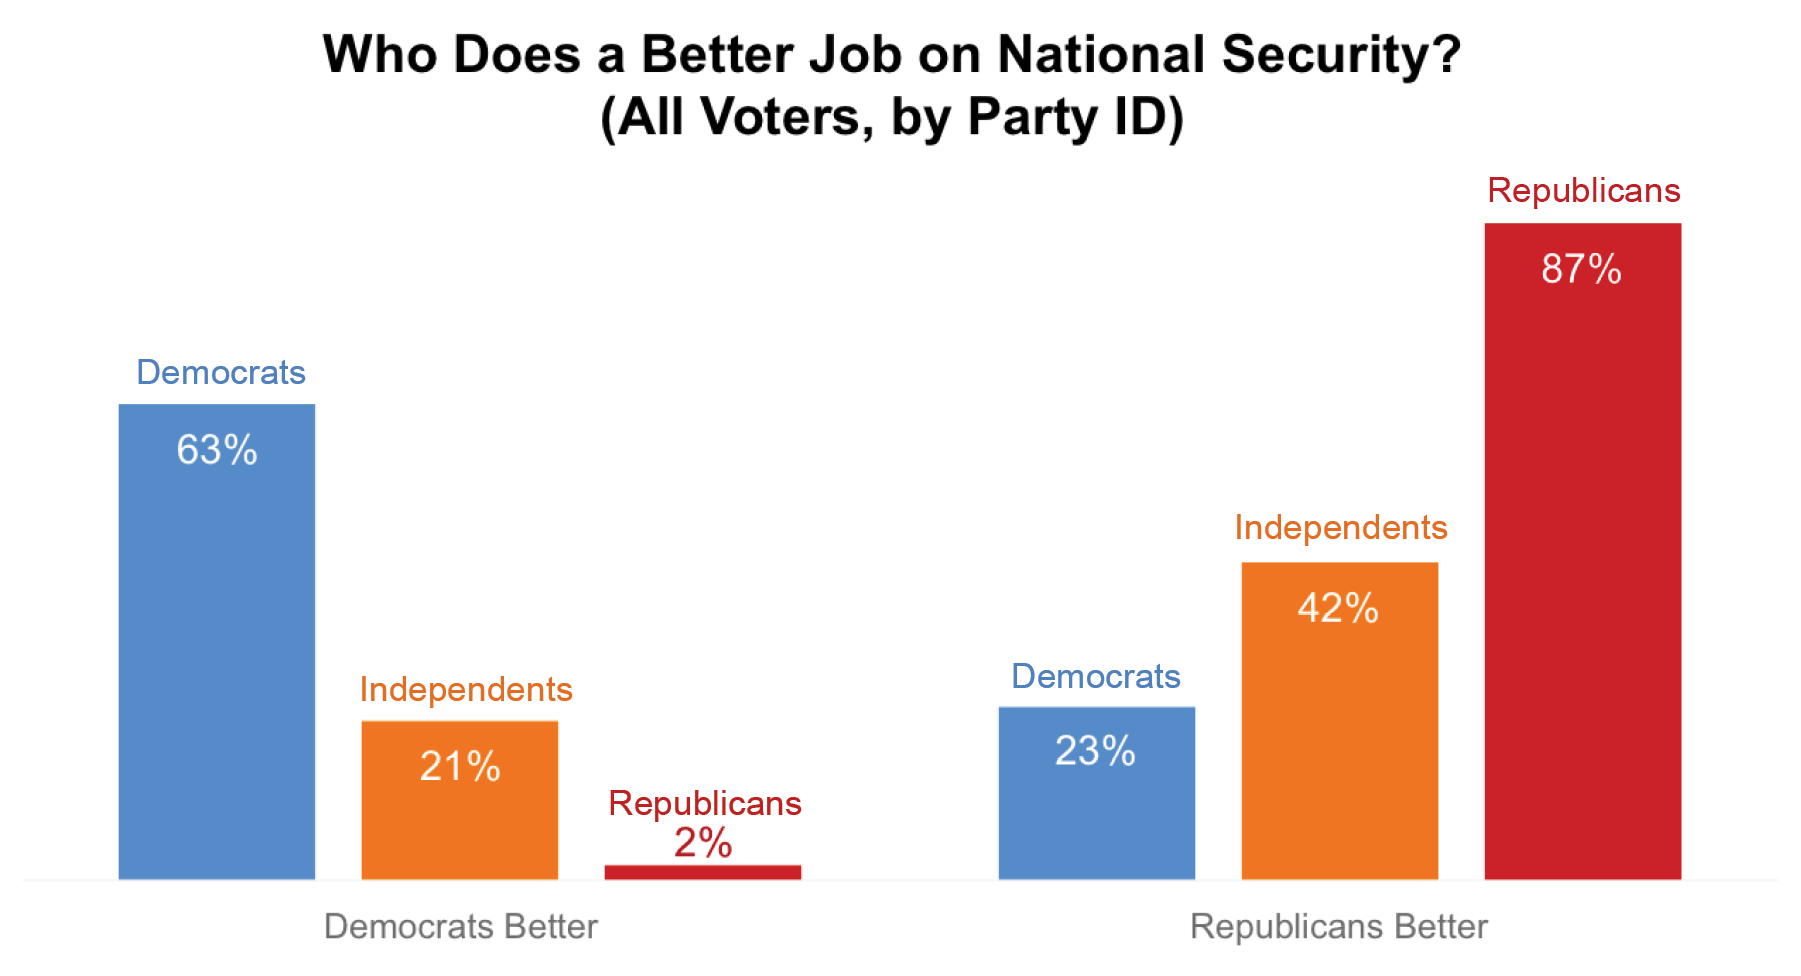 Who Does a Better Job on National Security? (All Voters, by Party ID)